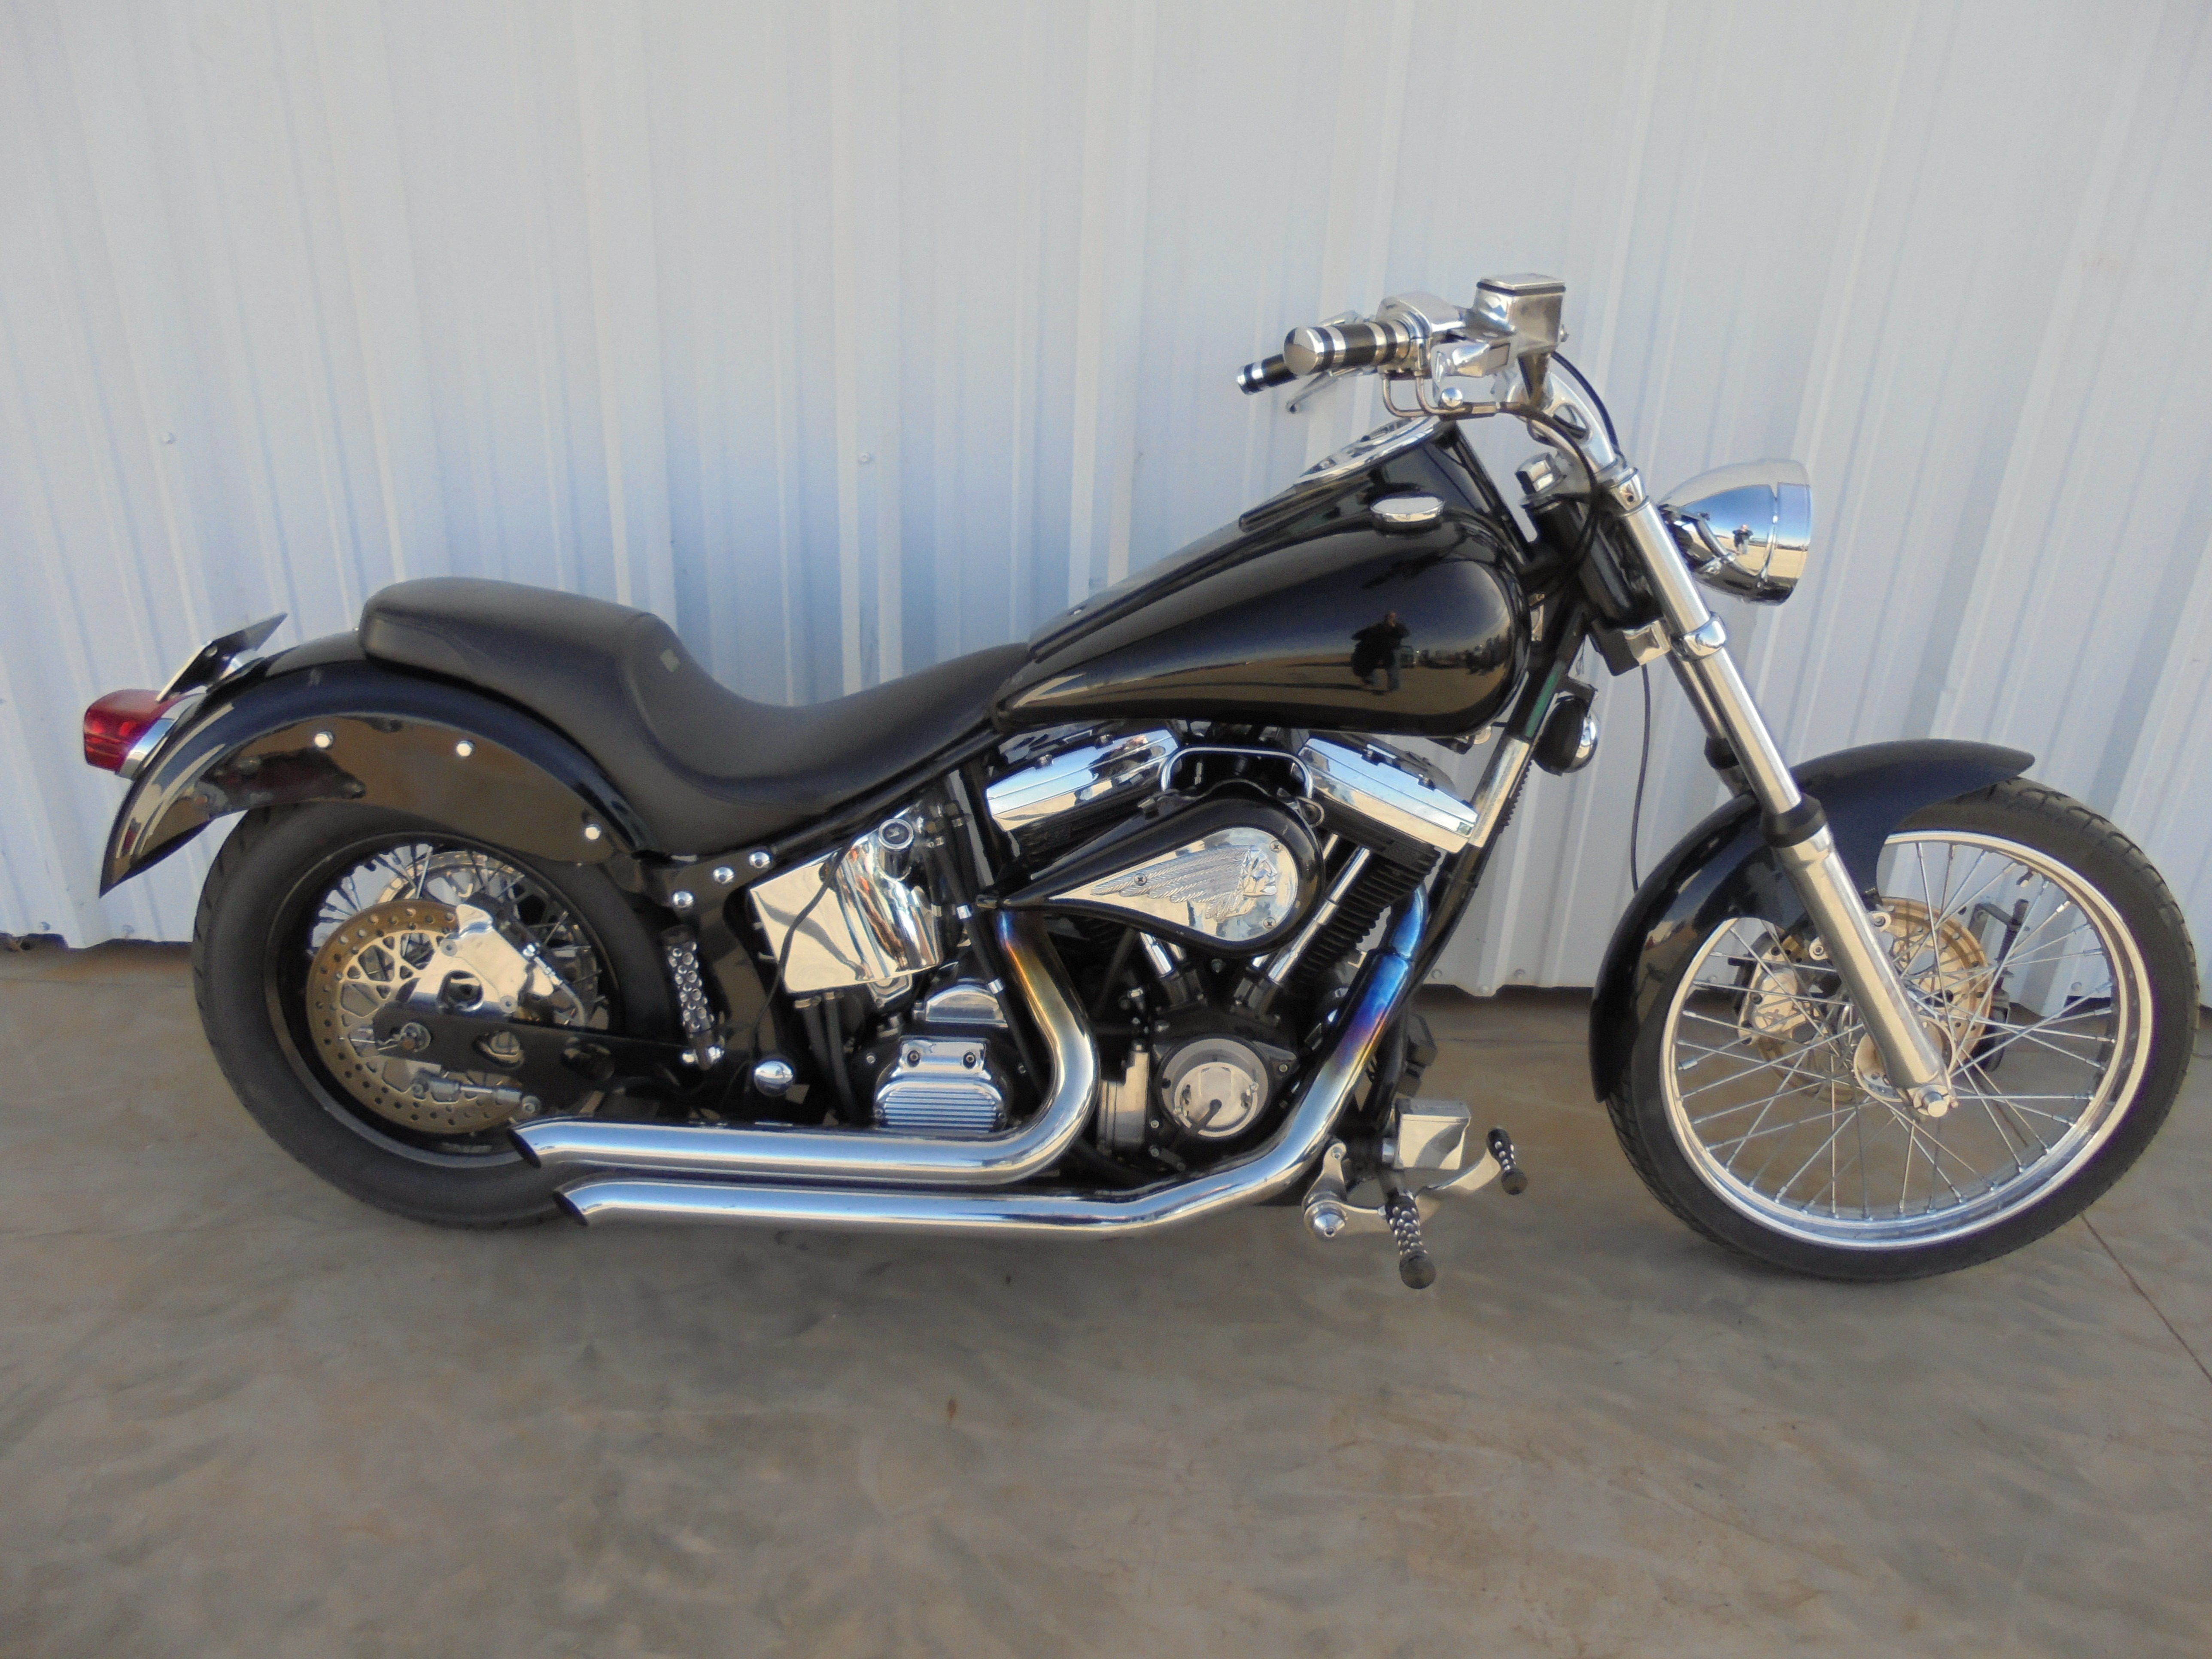 2001 indian scout black 2001 indian scout motorcycle in madison mn 4457036092 used. Black Bedroom Furniture Sets. Home Design Ideas